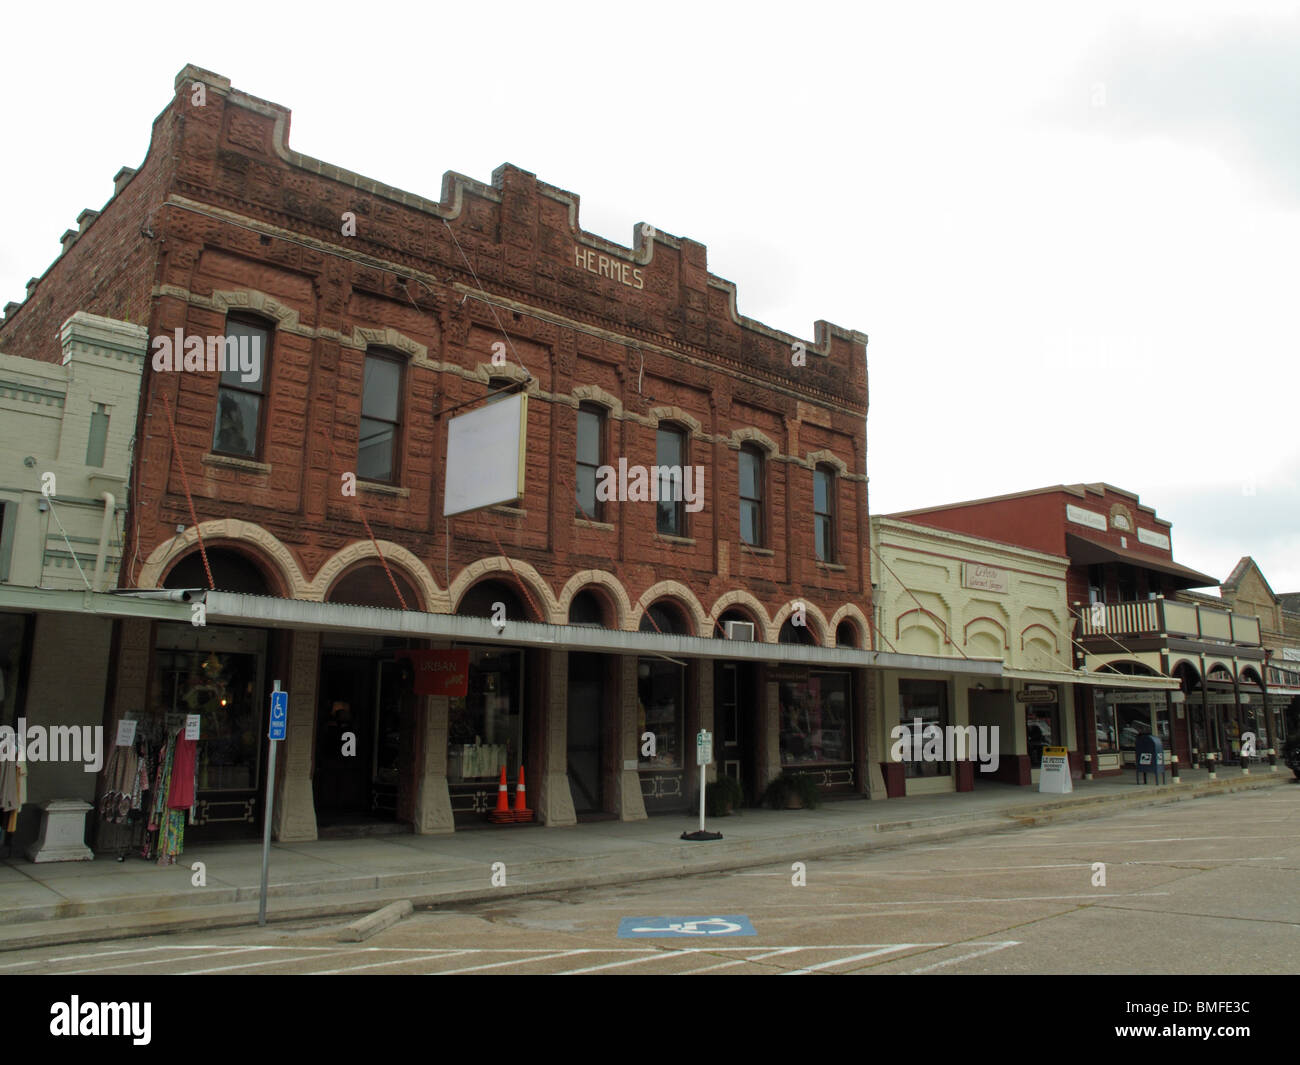 Old store fronts stock photos old store fronts stock - Grange mobel deutschland ...